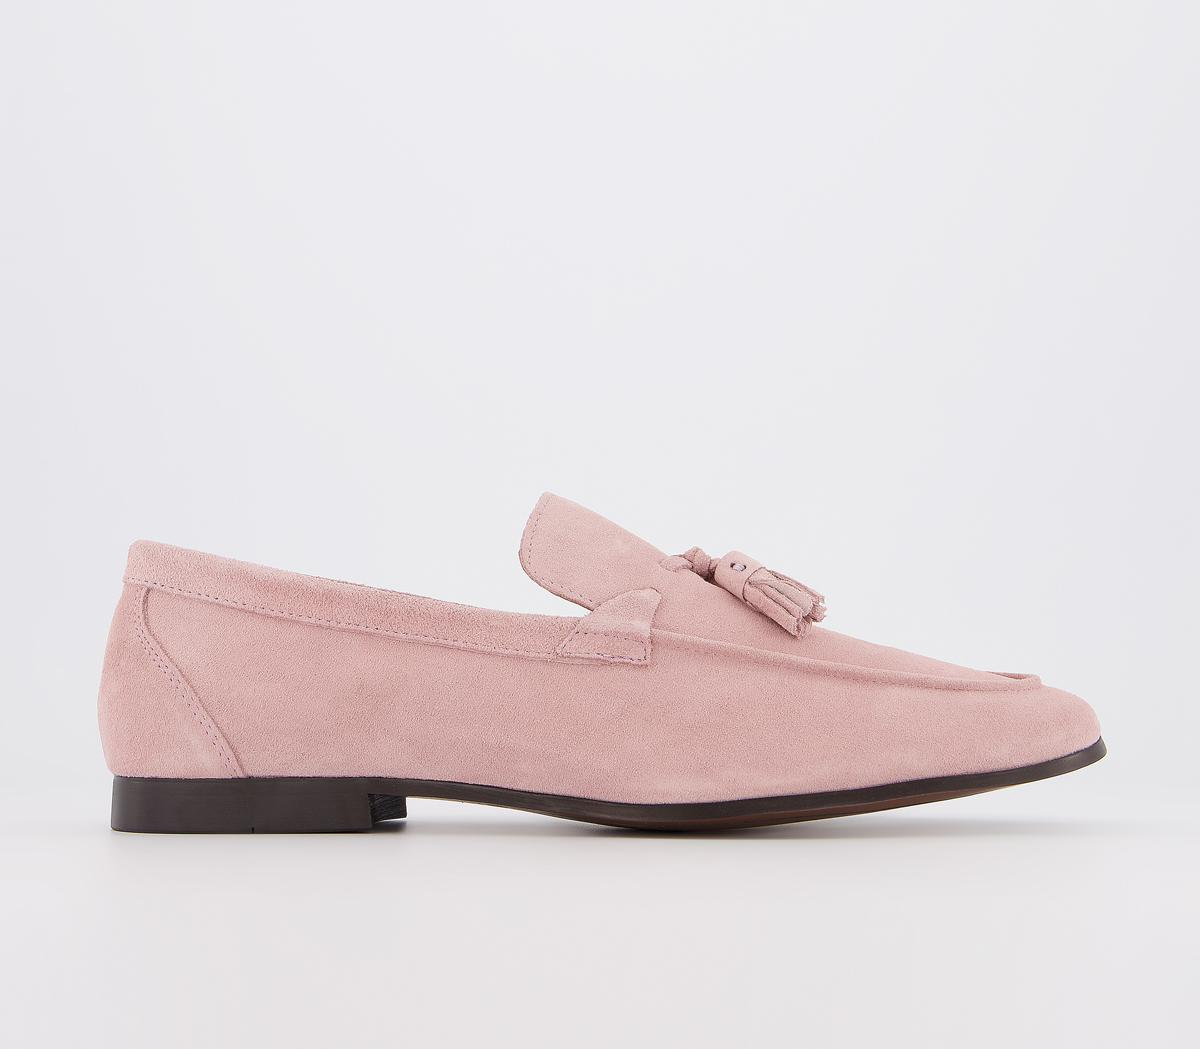 Clive Tassel Loafers